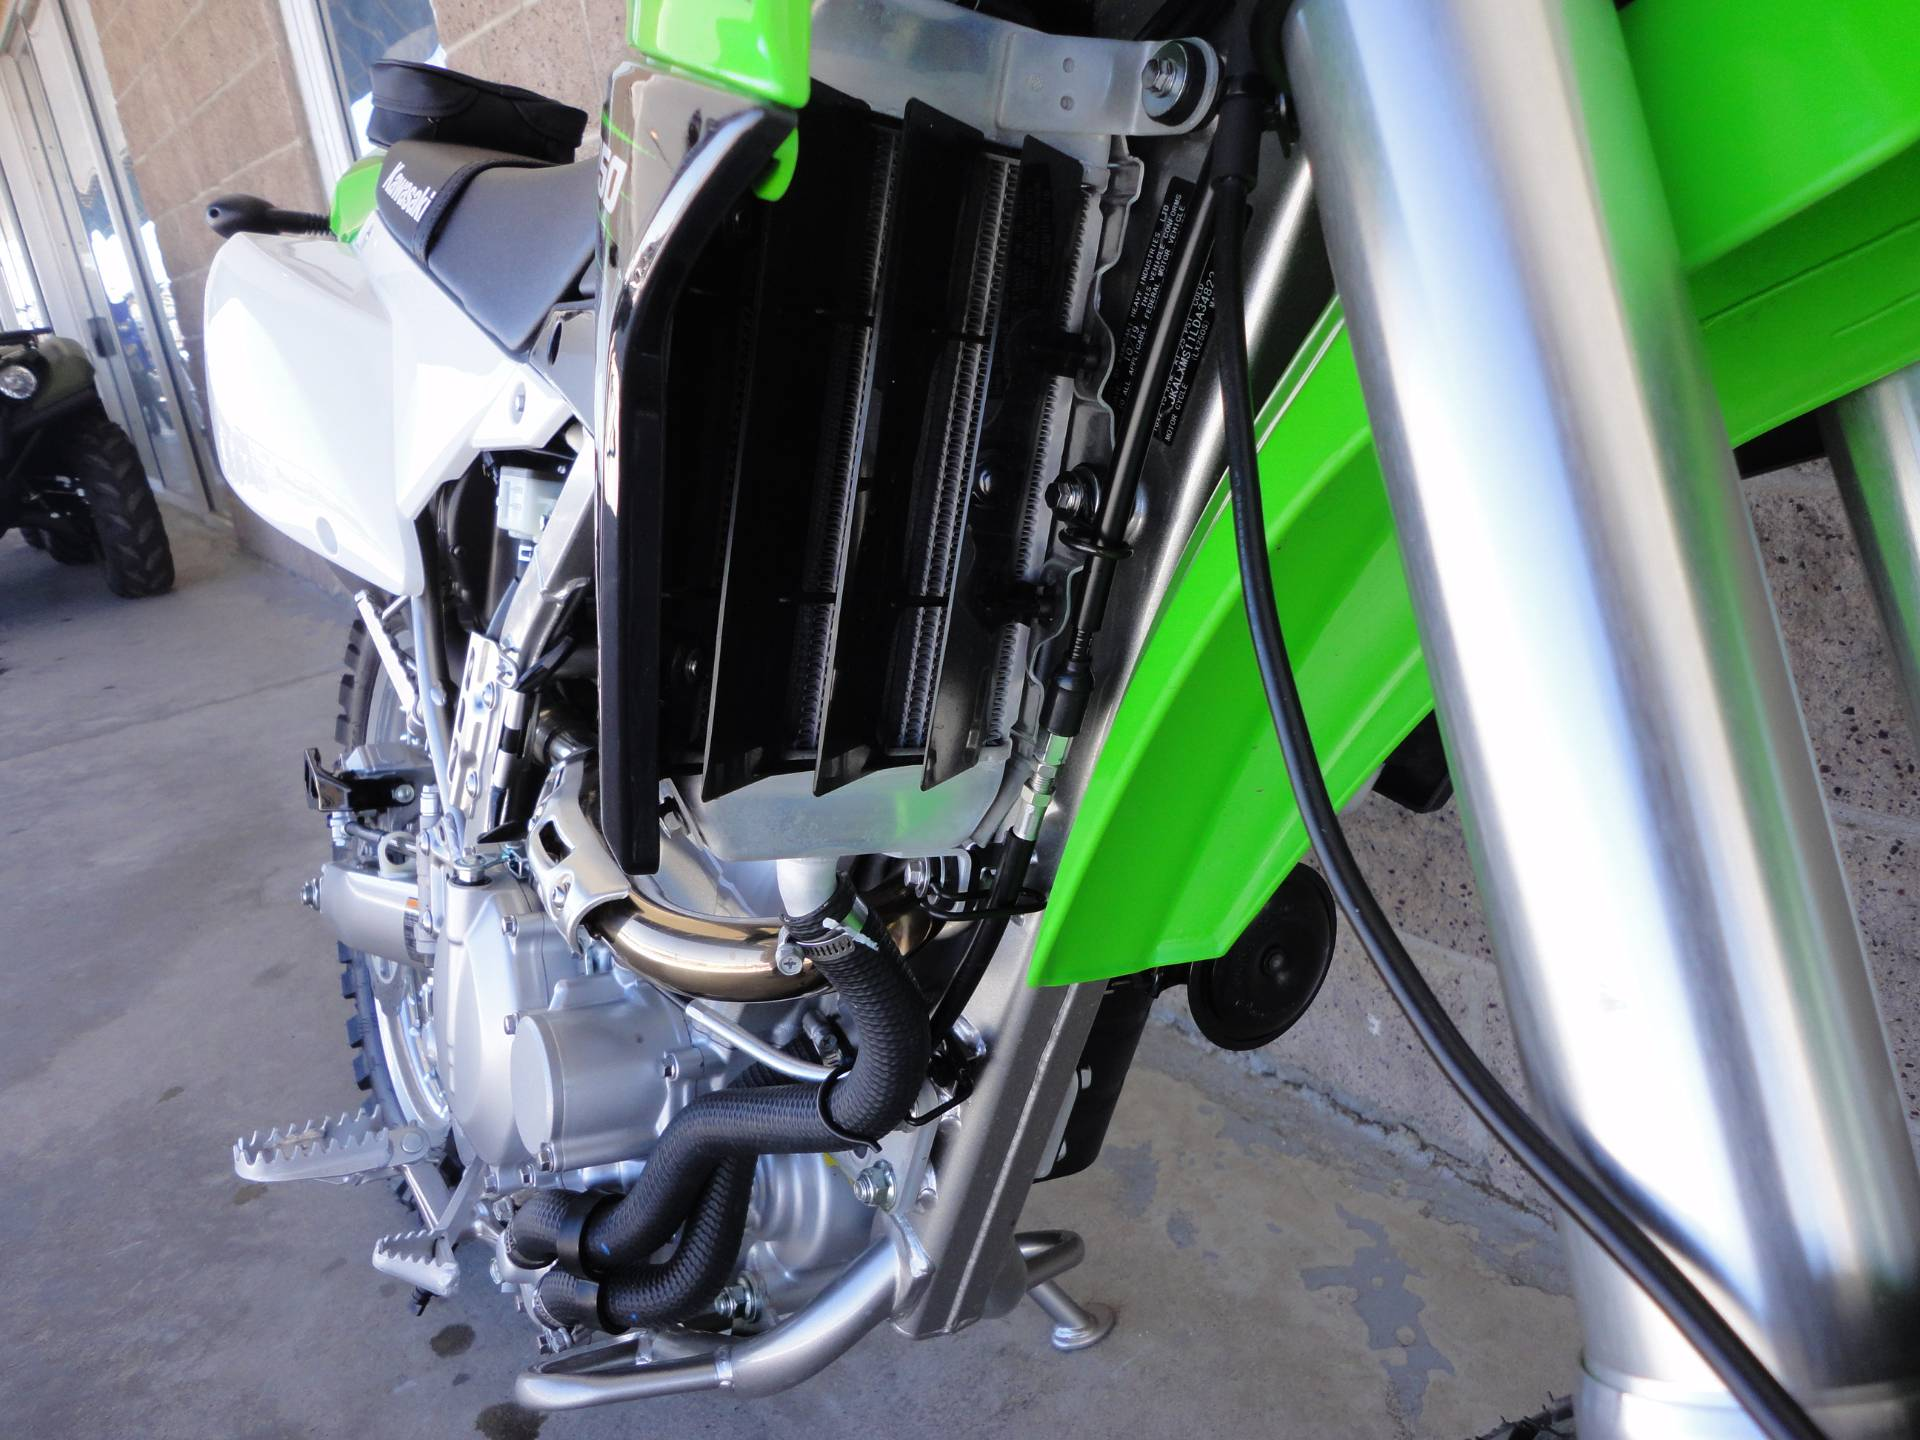 2020 Kawasaki KLX 250 in Denver, Colorado - Photo 16